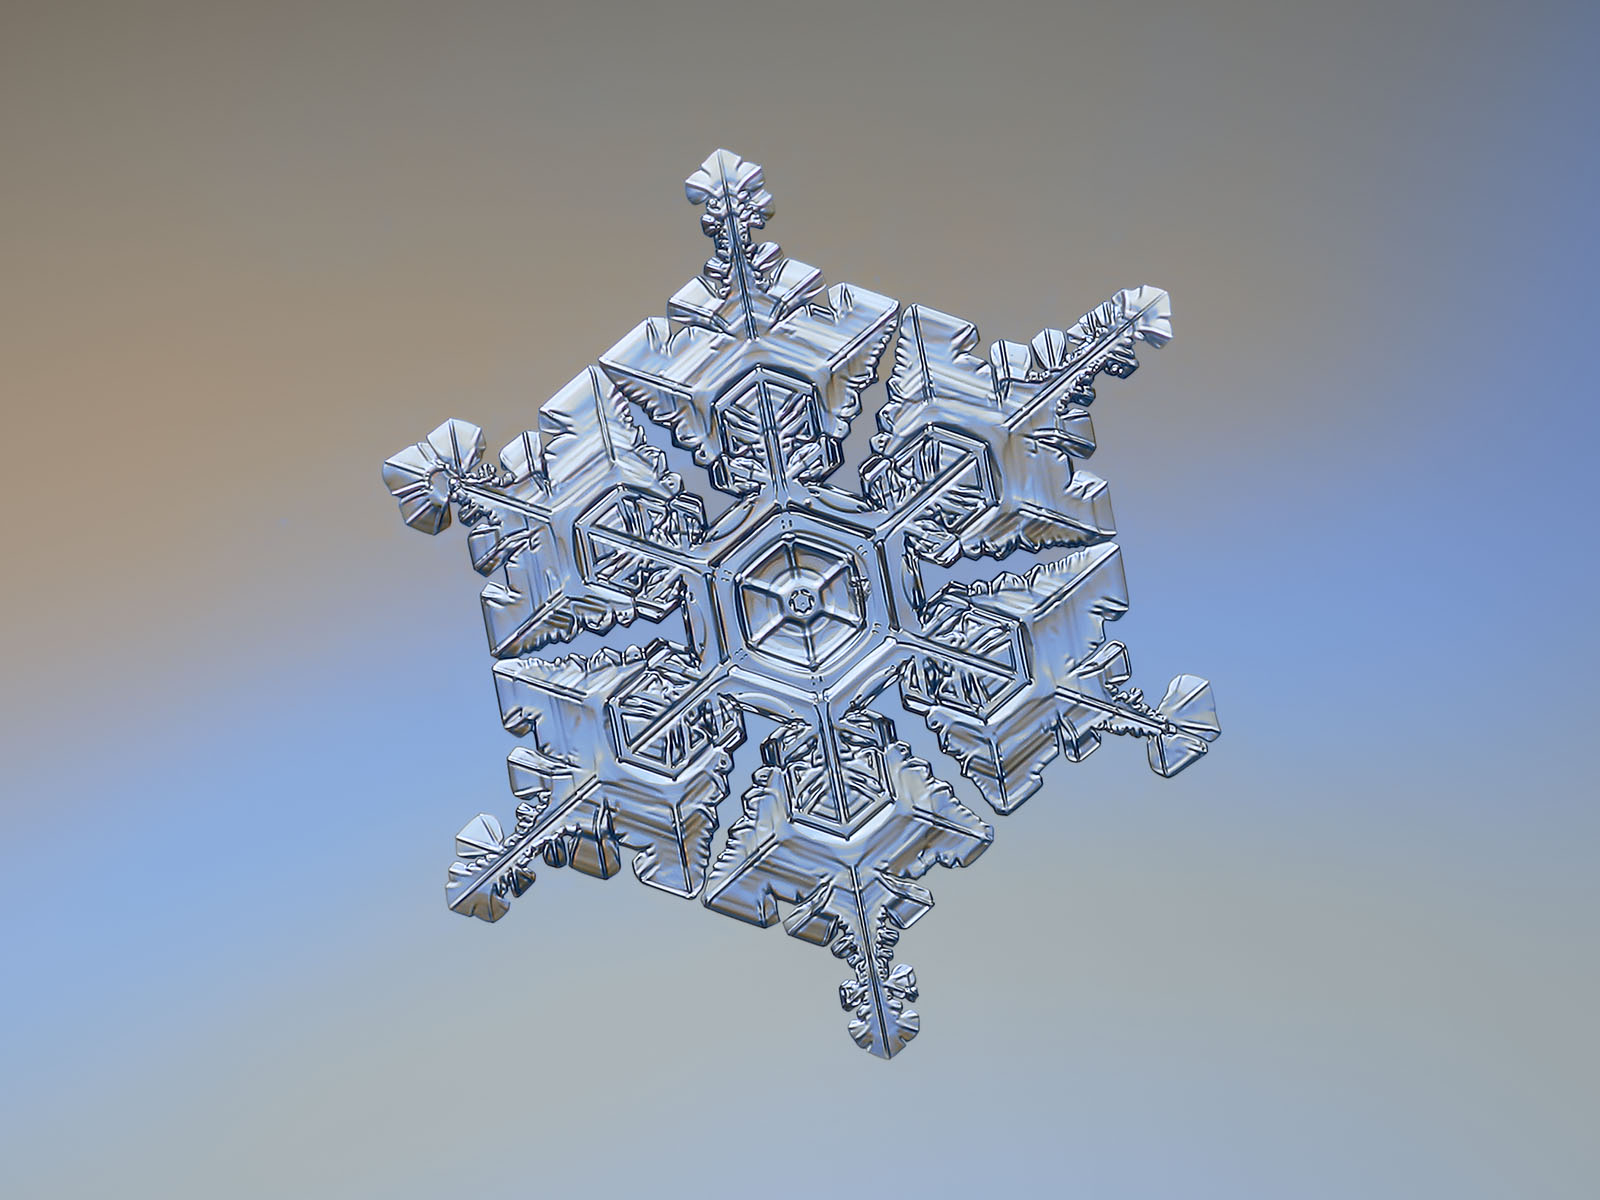 Picture of real snowflake: snow crystal of star plate type with complex 3d structure and glossy surface